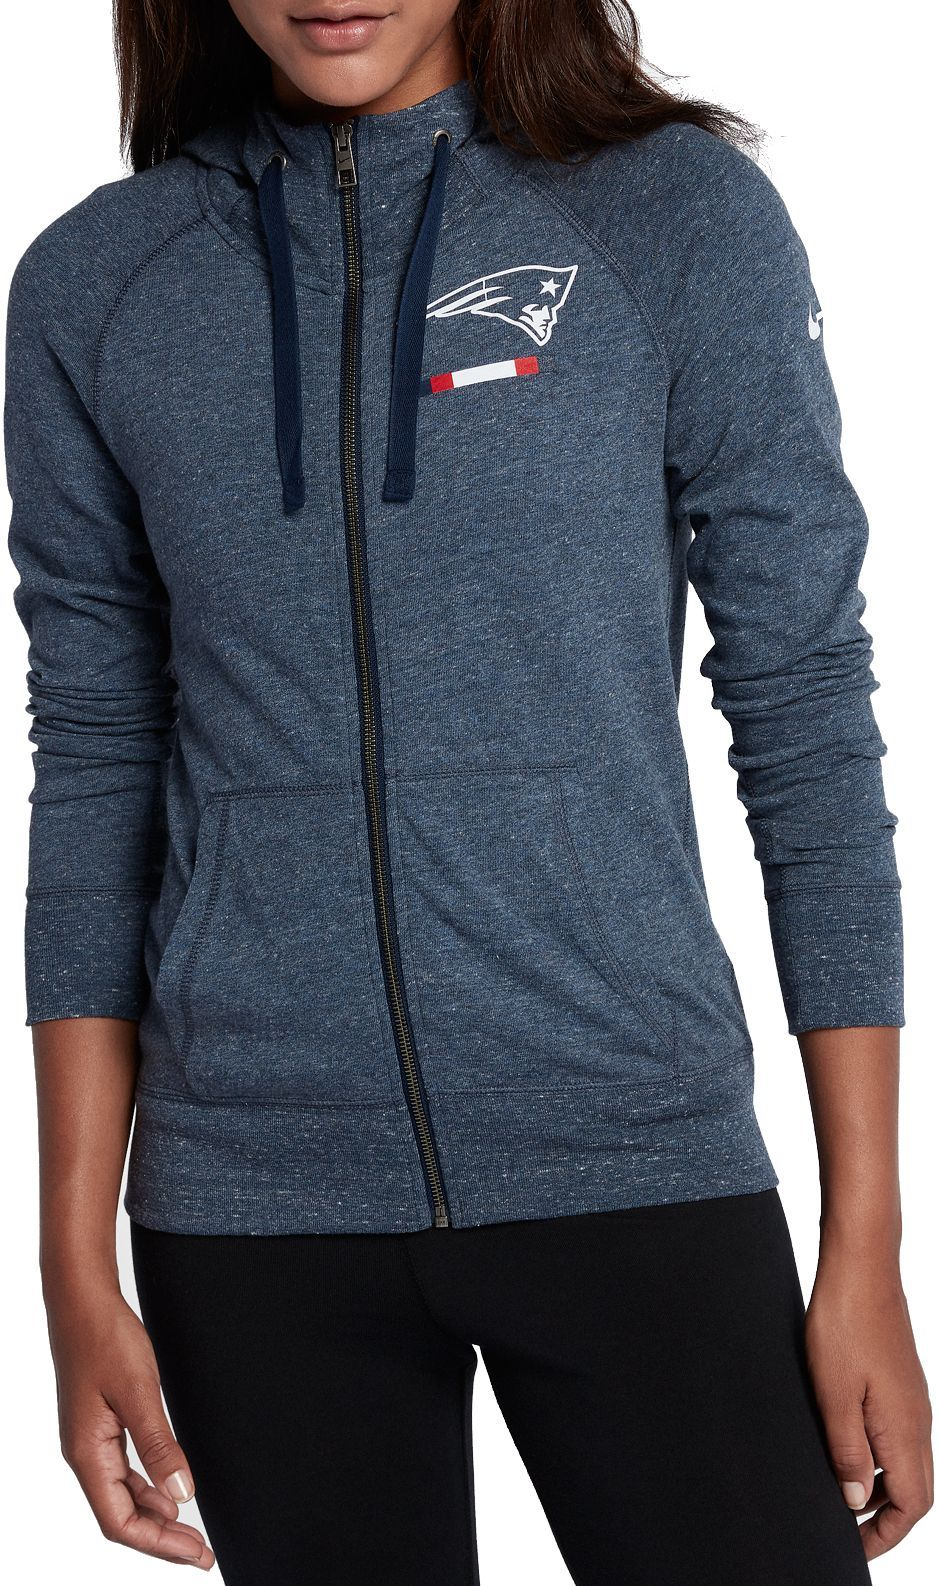 high fashion wholesale sales presenting Nike Women's New England Patriots Gym Vintage Full-Zip Navy ...